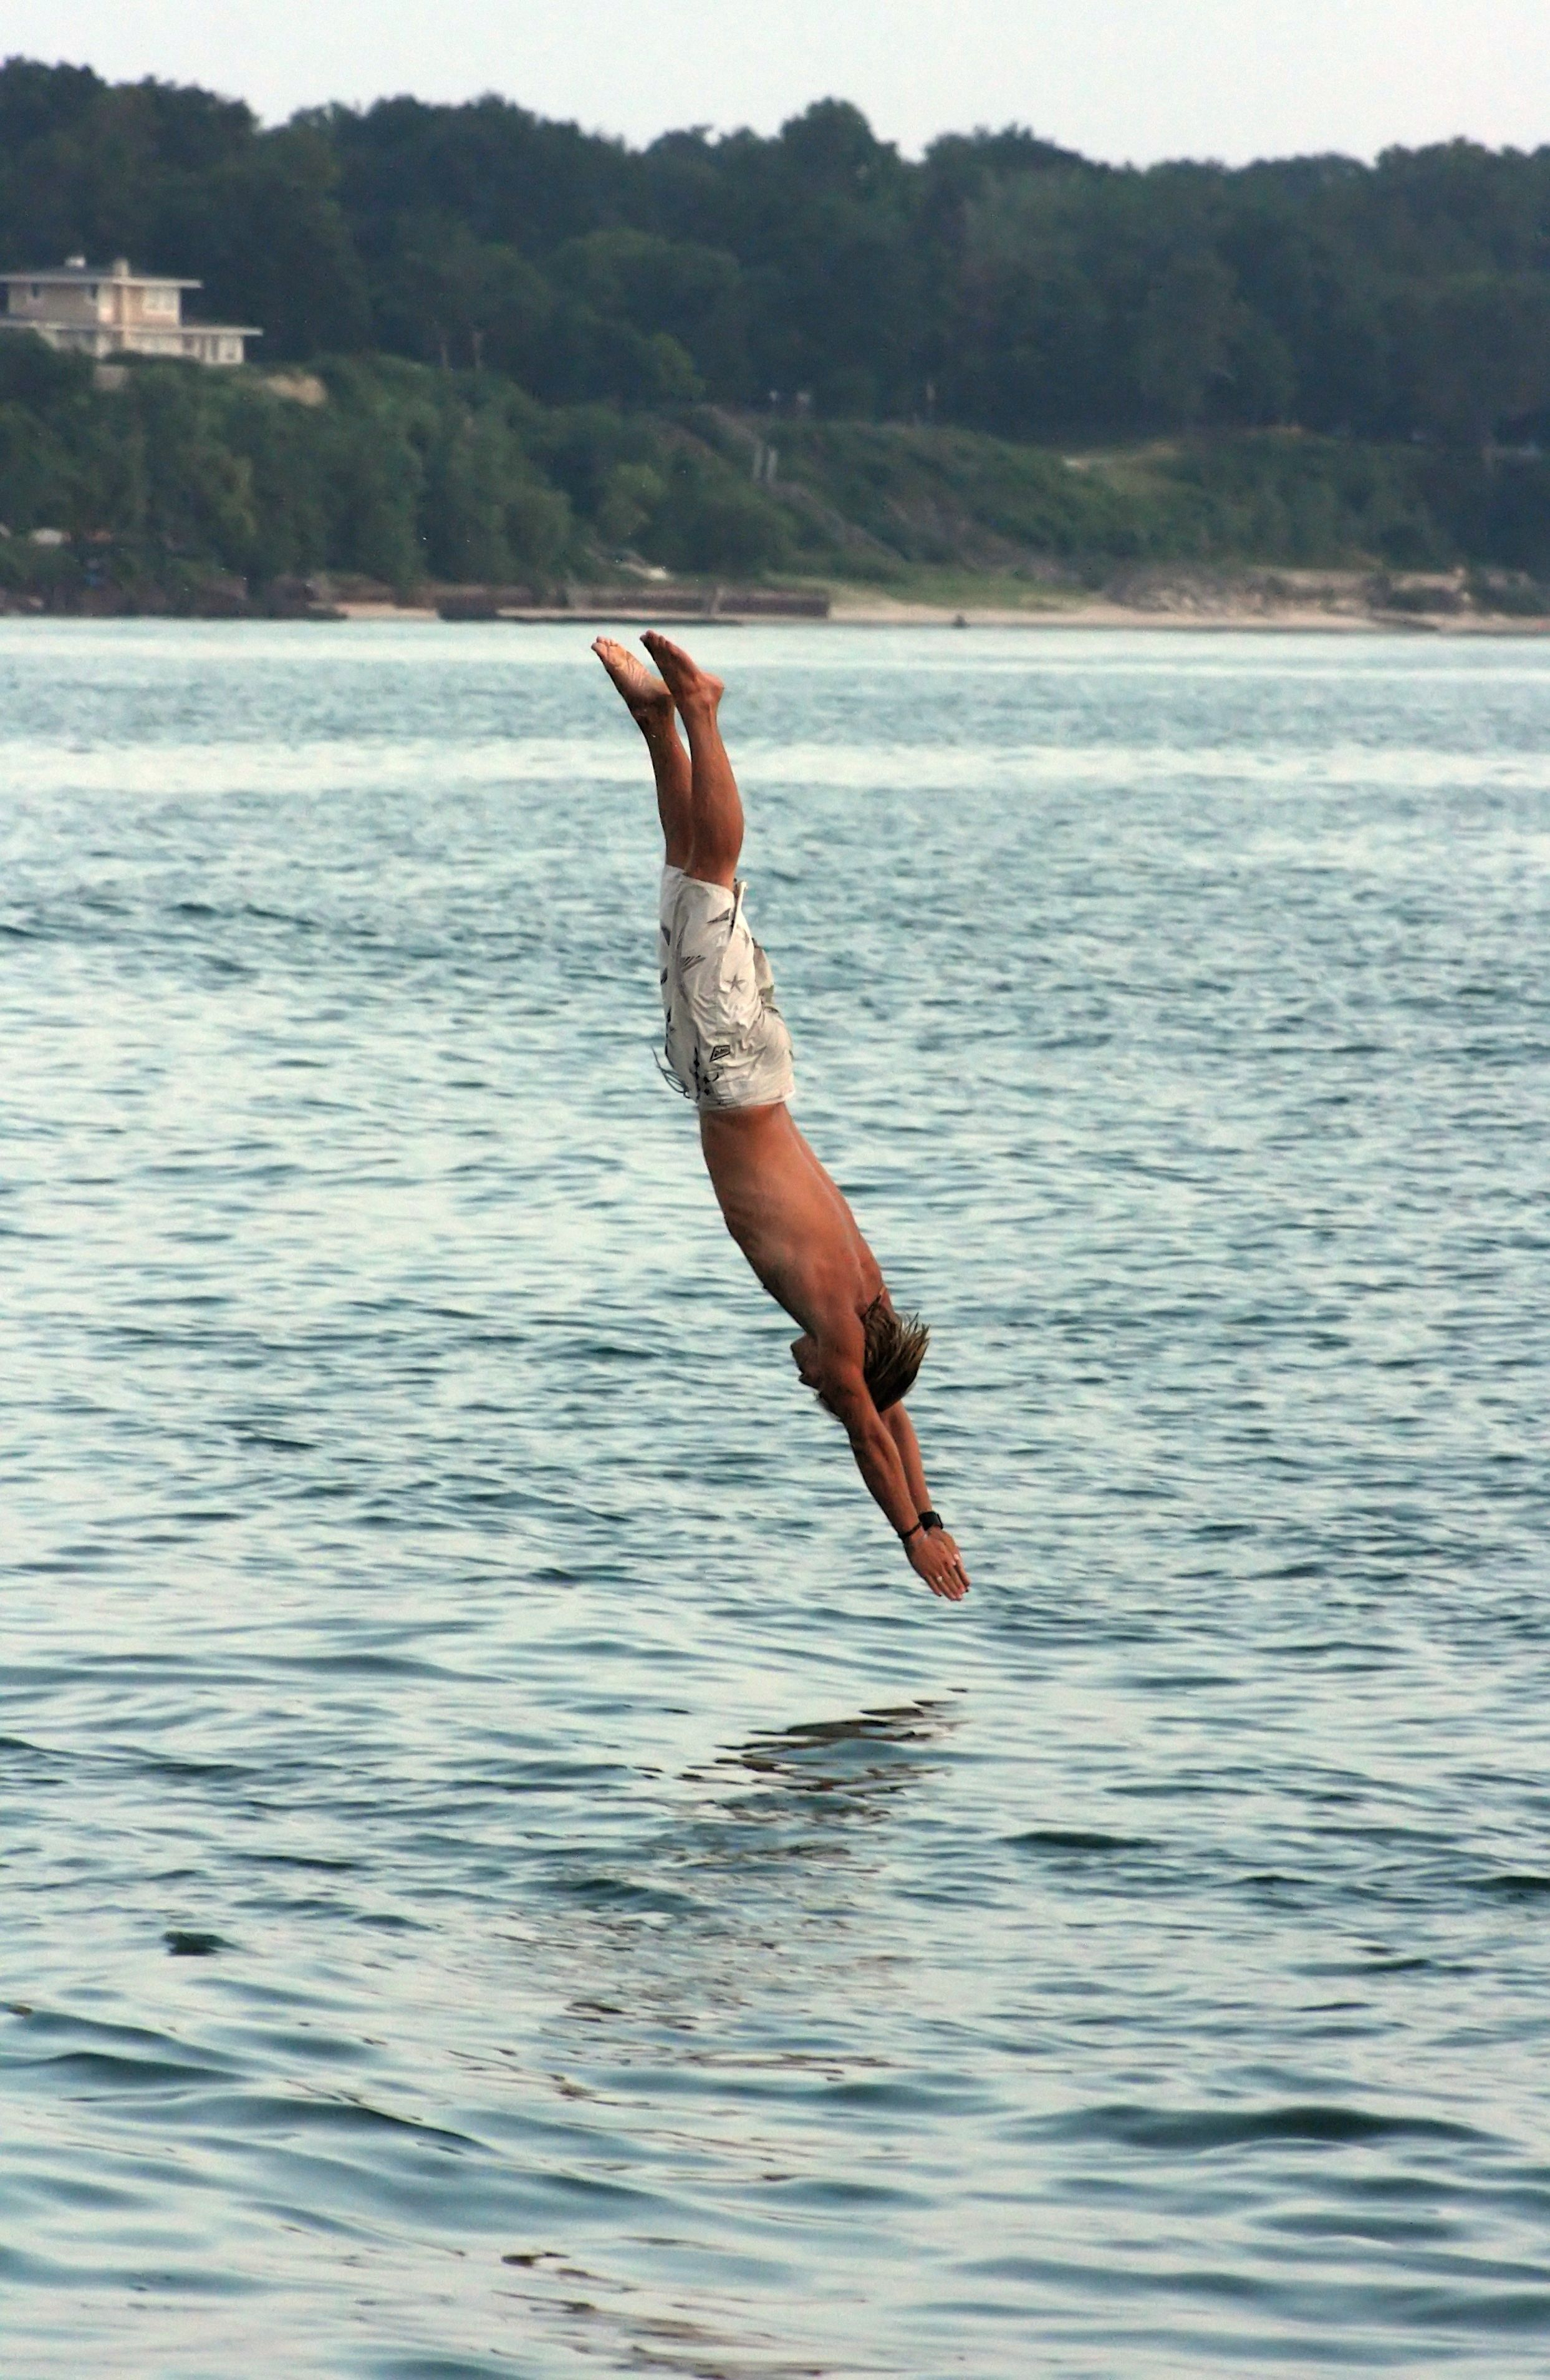 People Often Feel Free When They Are Swimming In Water